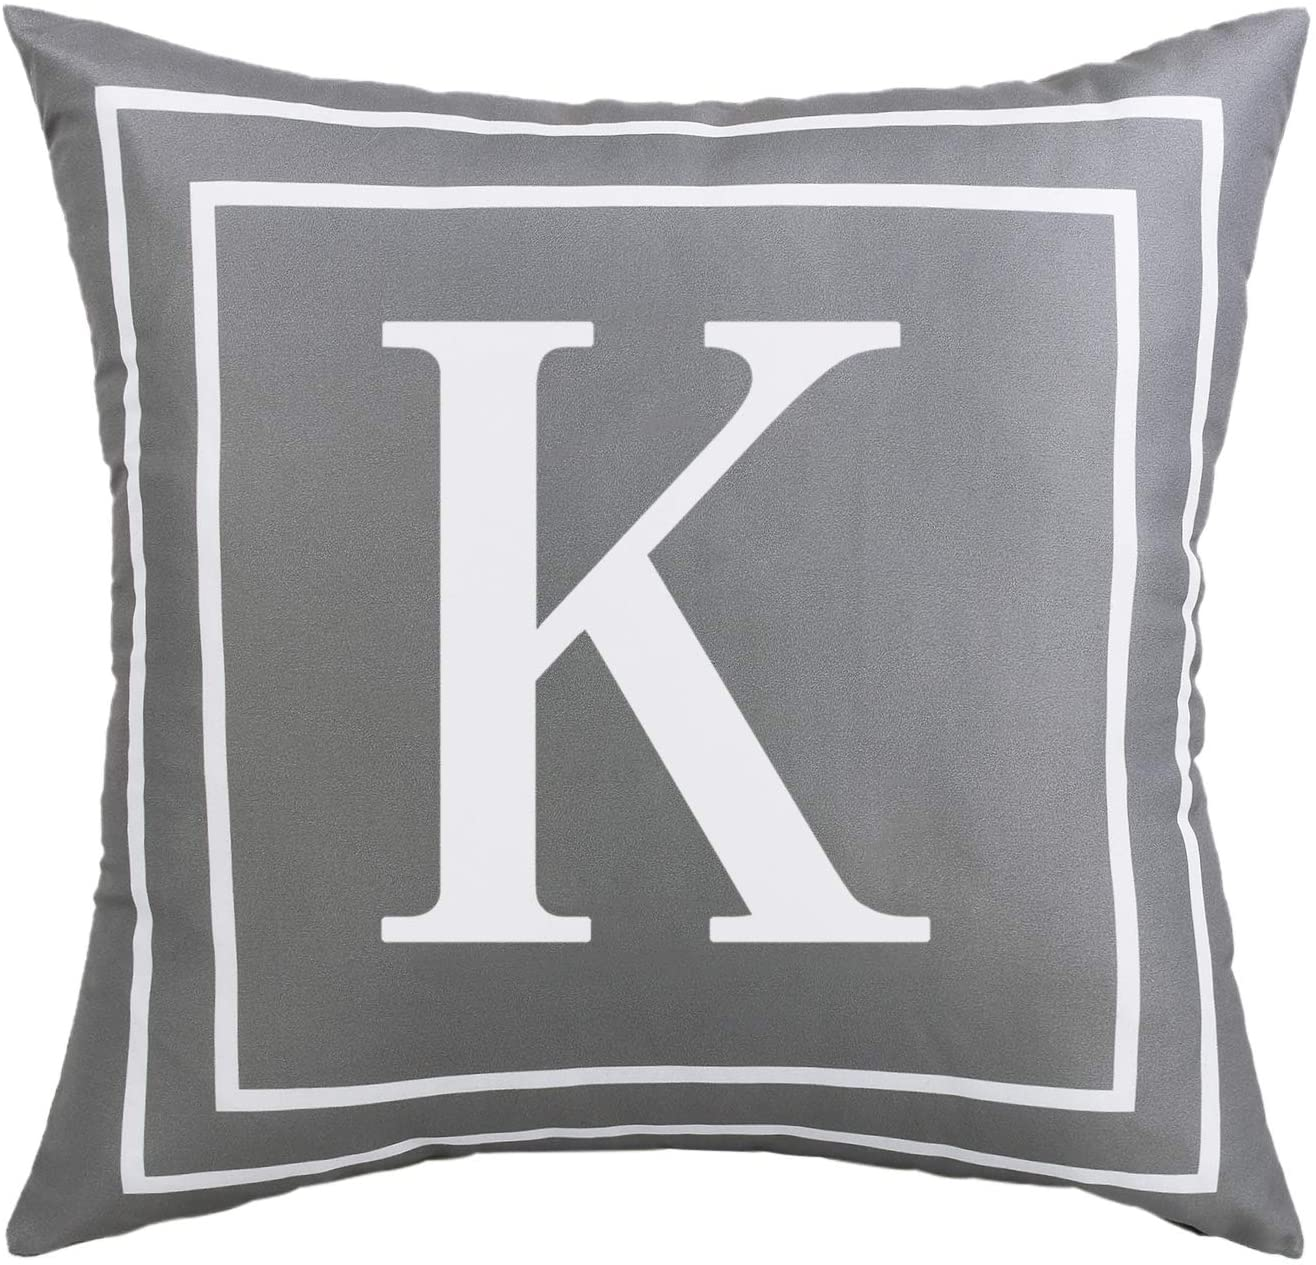 Fascidorm Gray Pillow Cover English Alphabet K Throw Pillow Case Modern Cushion Cover Square Pillowcase Decoration for Sofa Bed Chair Car 16 x 16 Inch